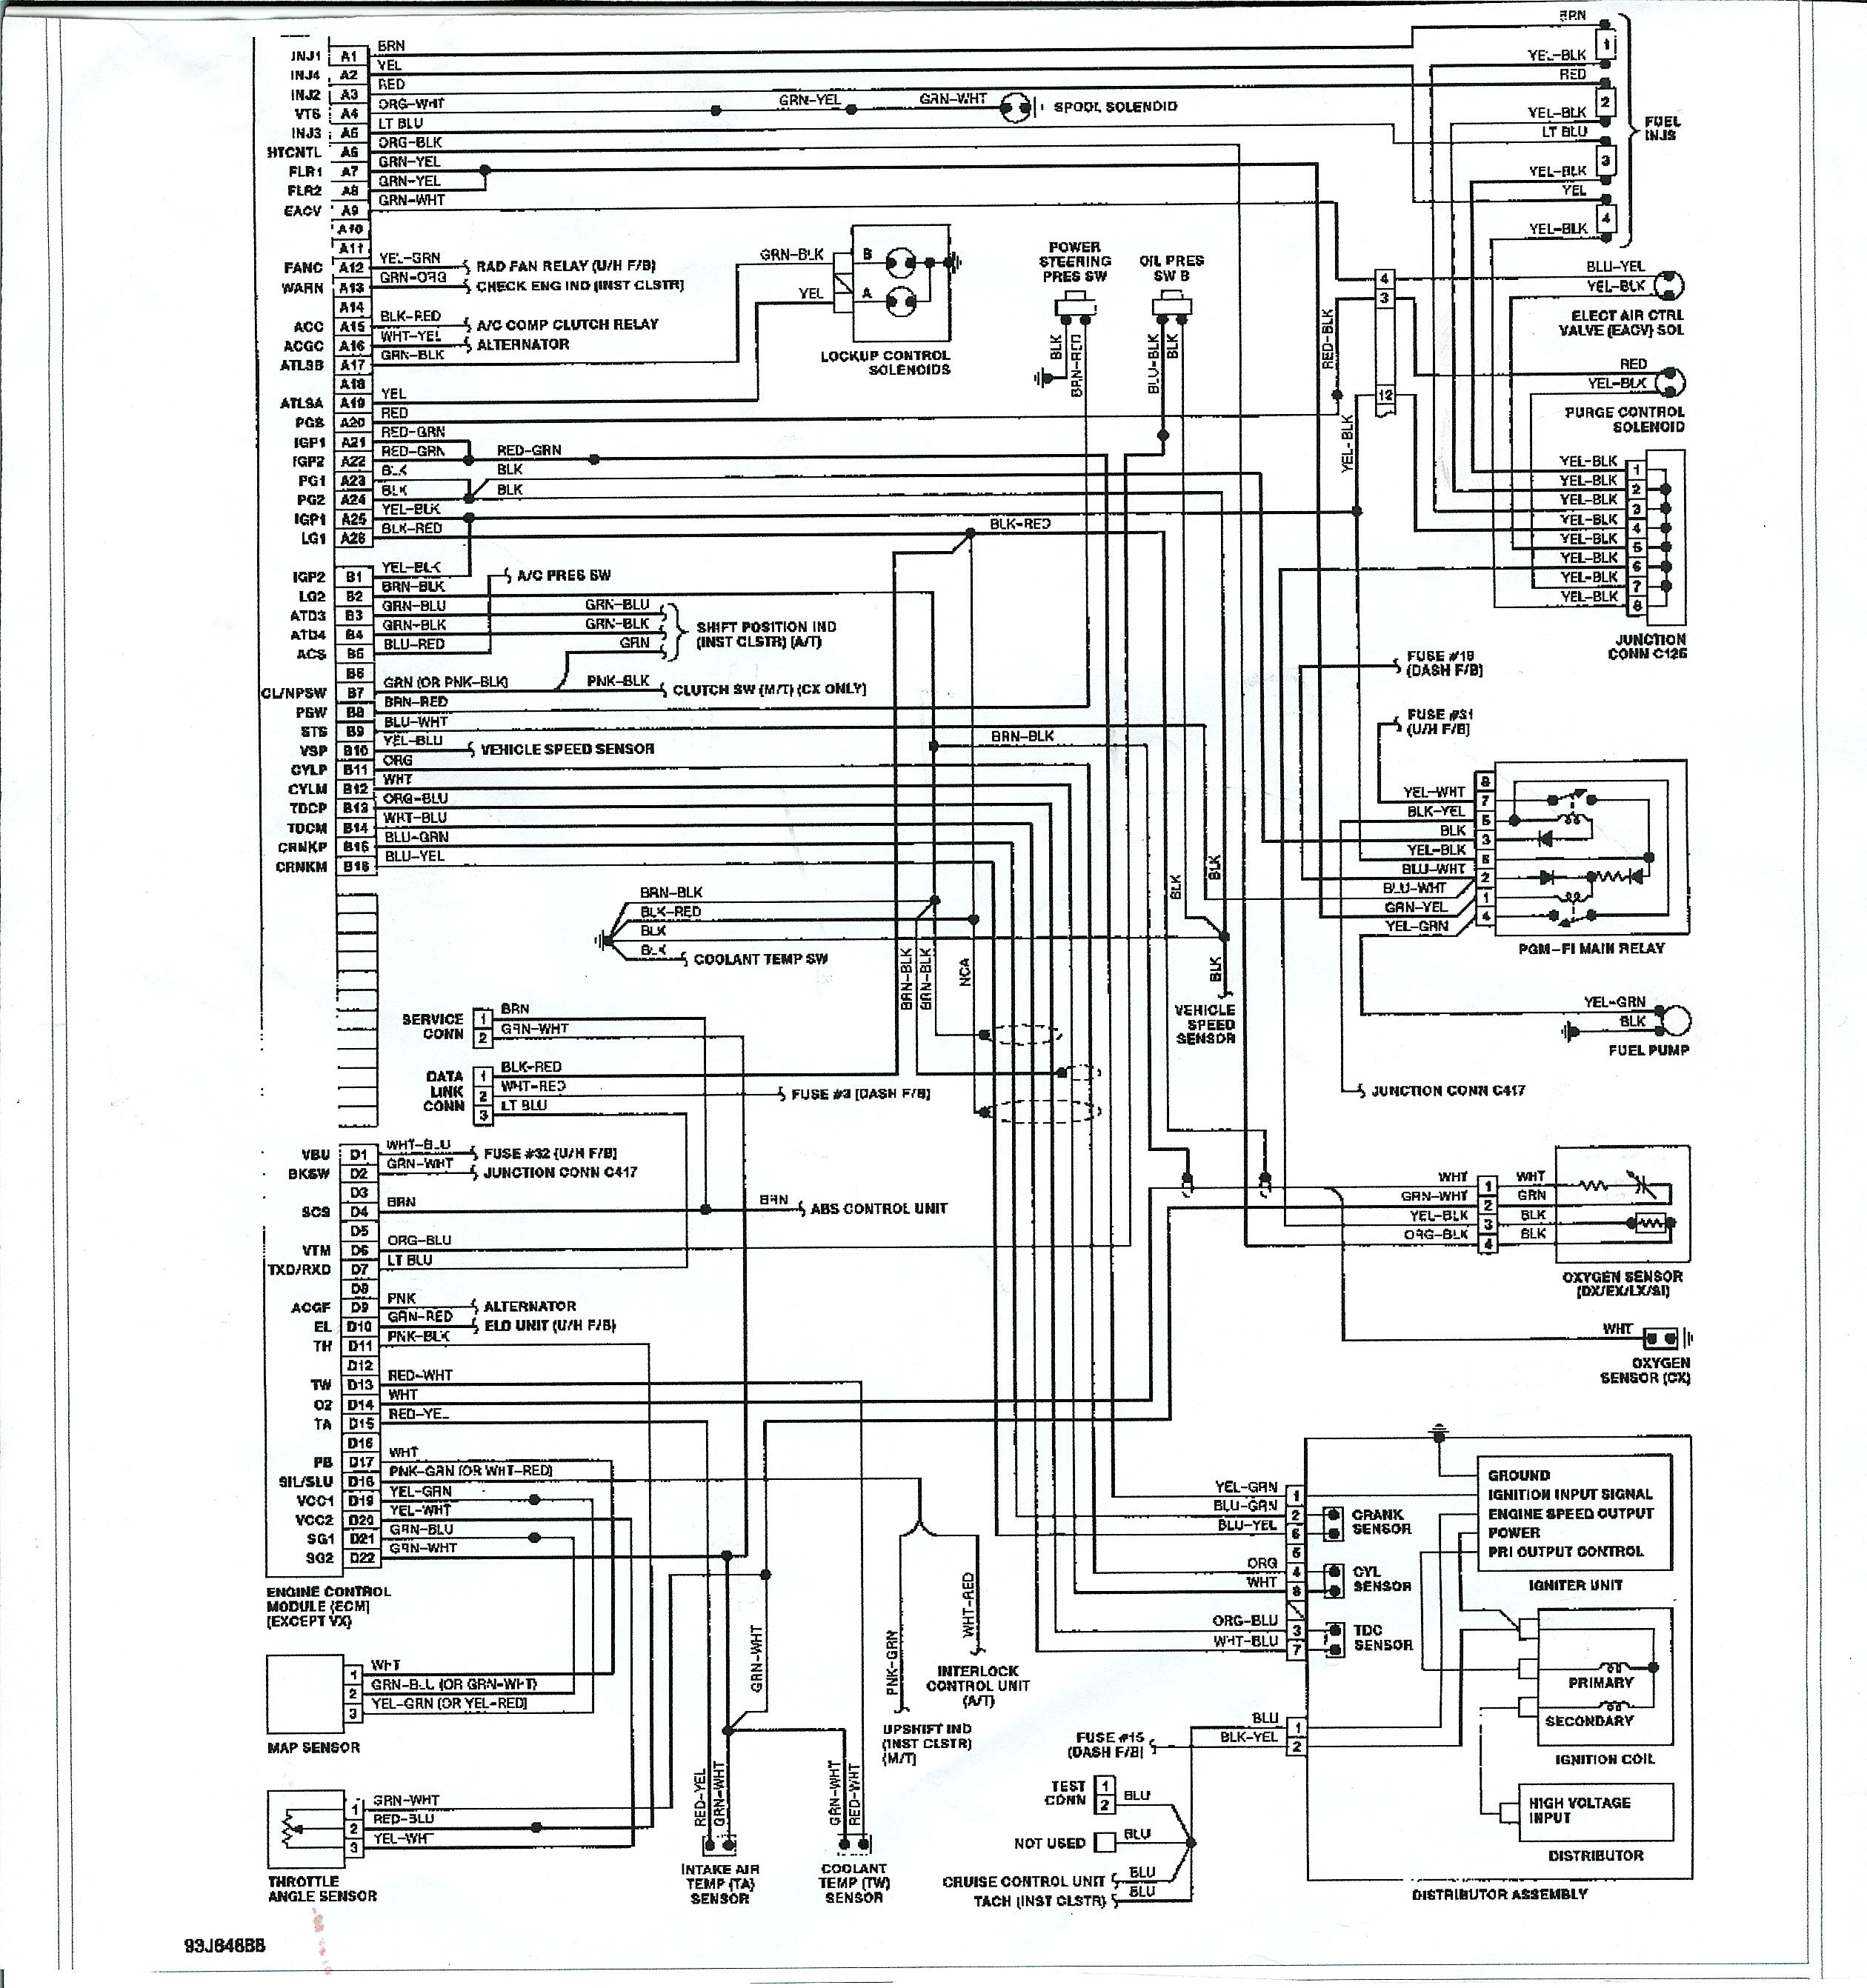 2003 Honda Accord Electrical Troubleshooting Manual Wiring